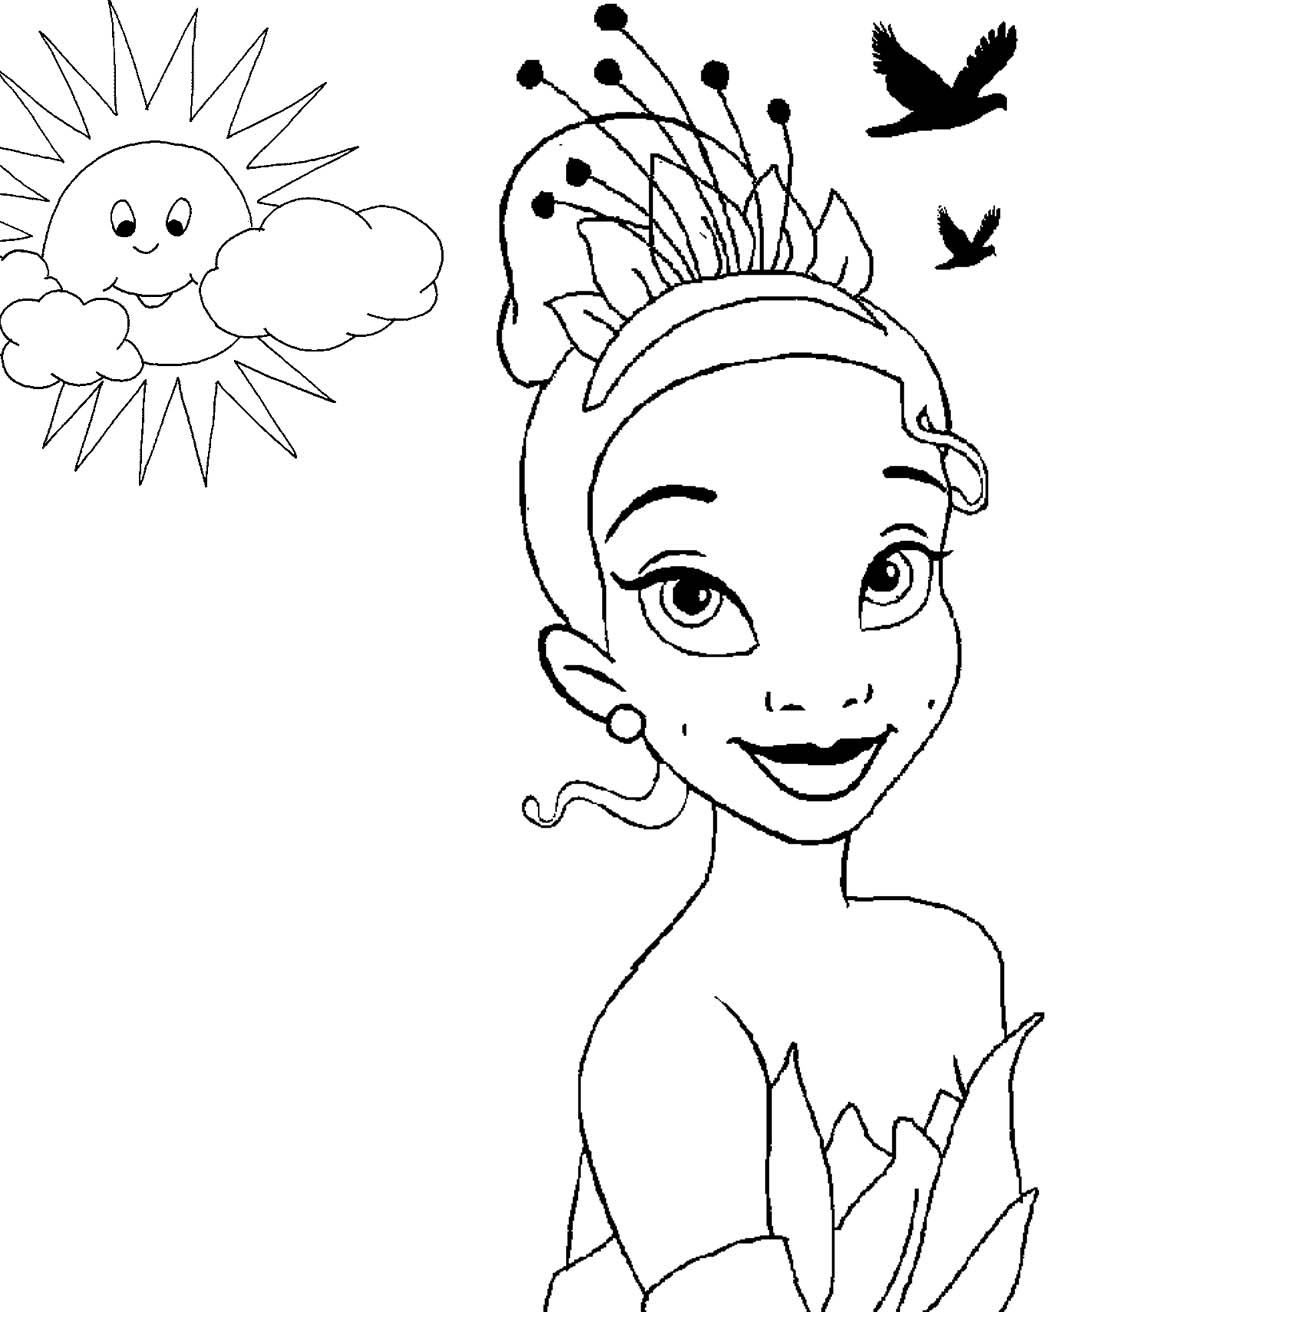 Disney Princess Tiana Coloring